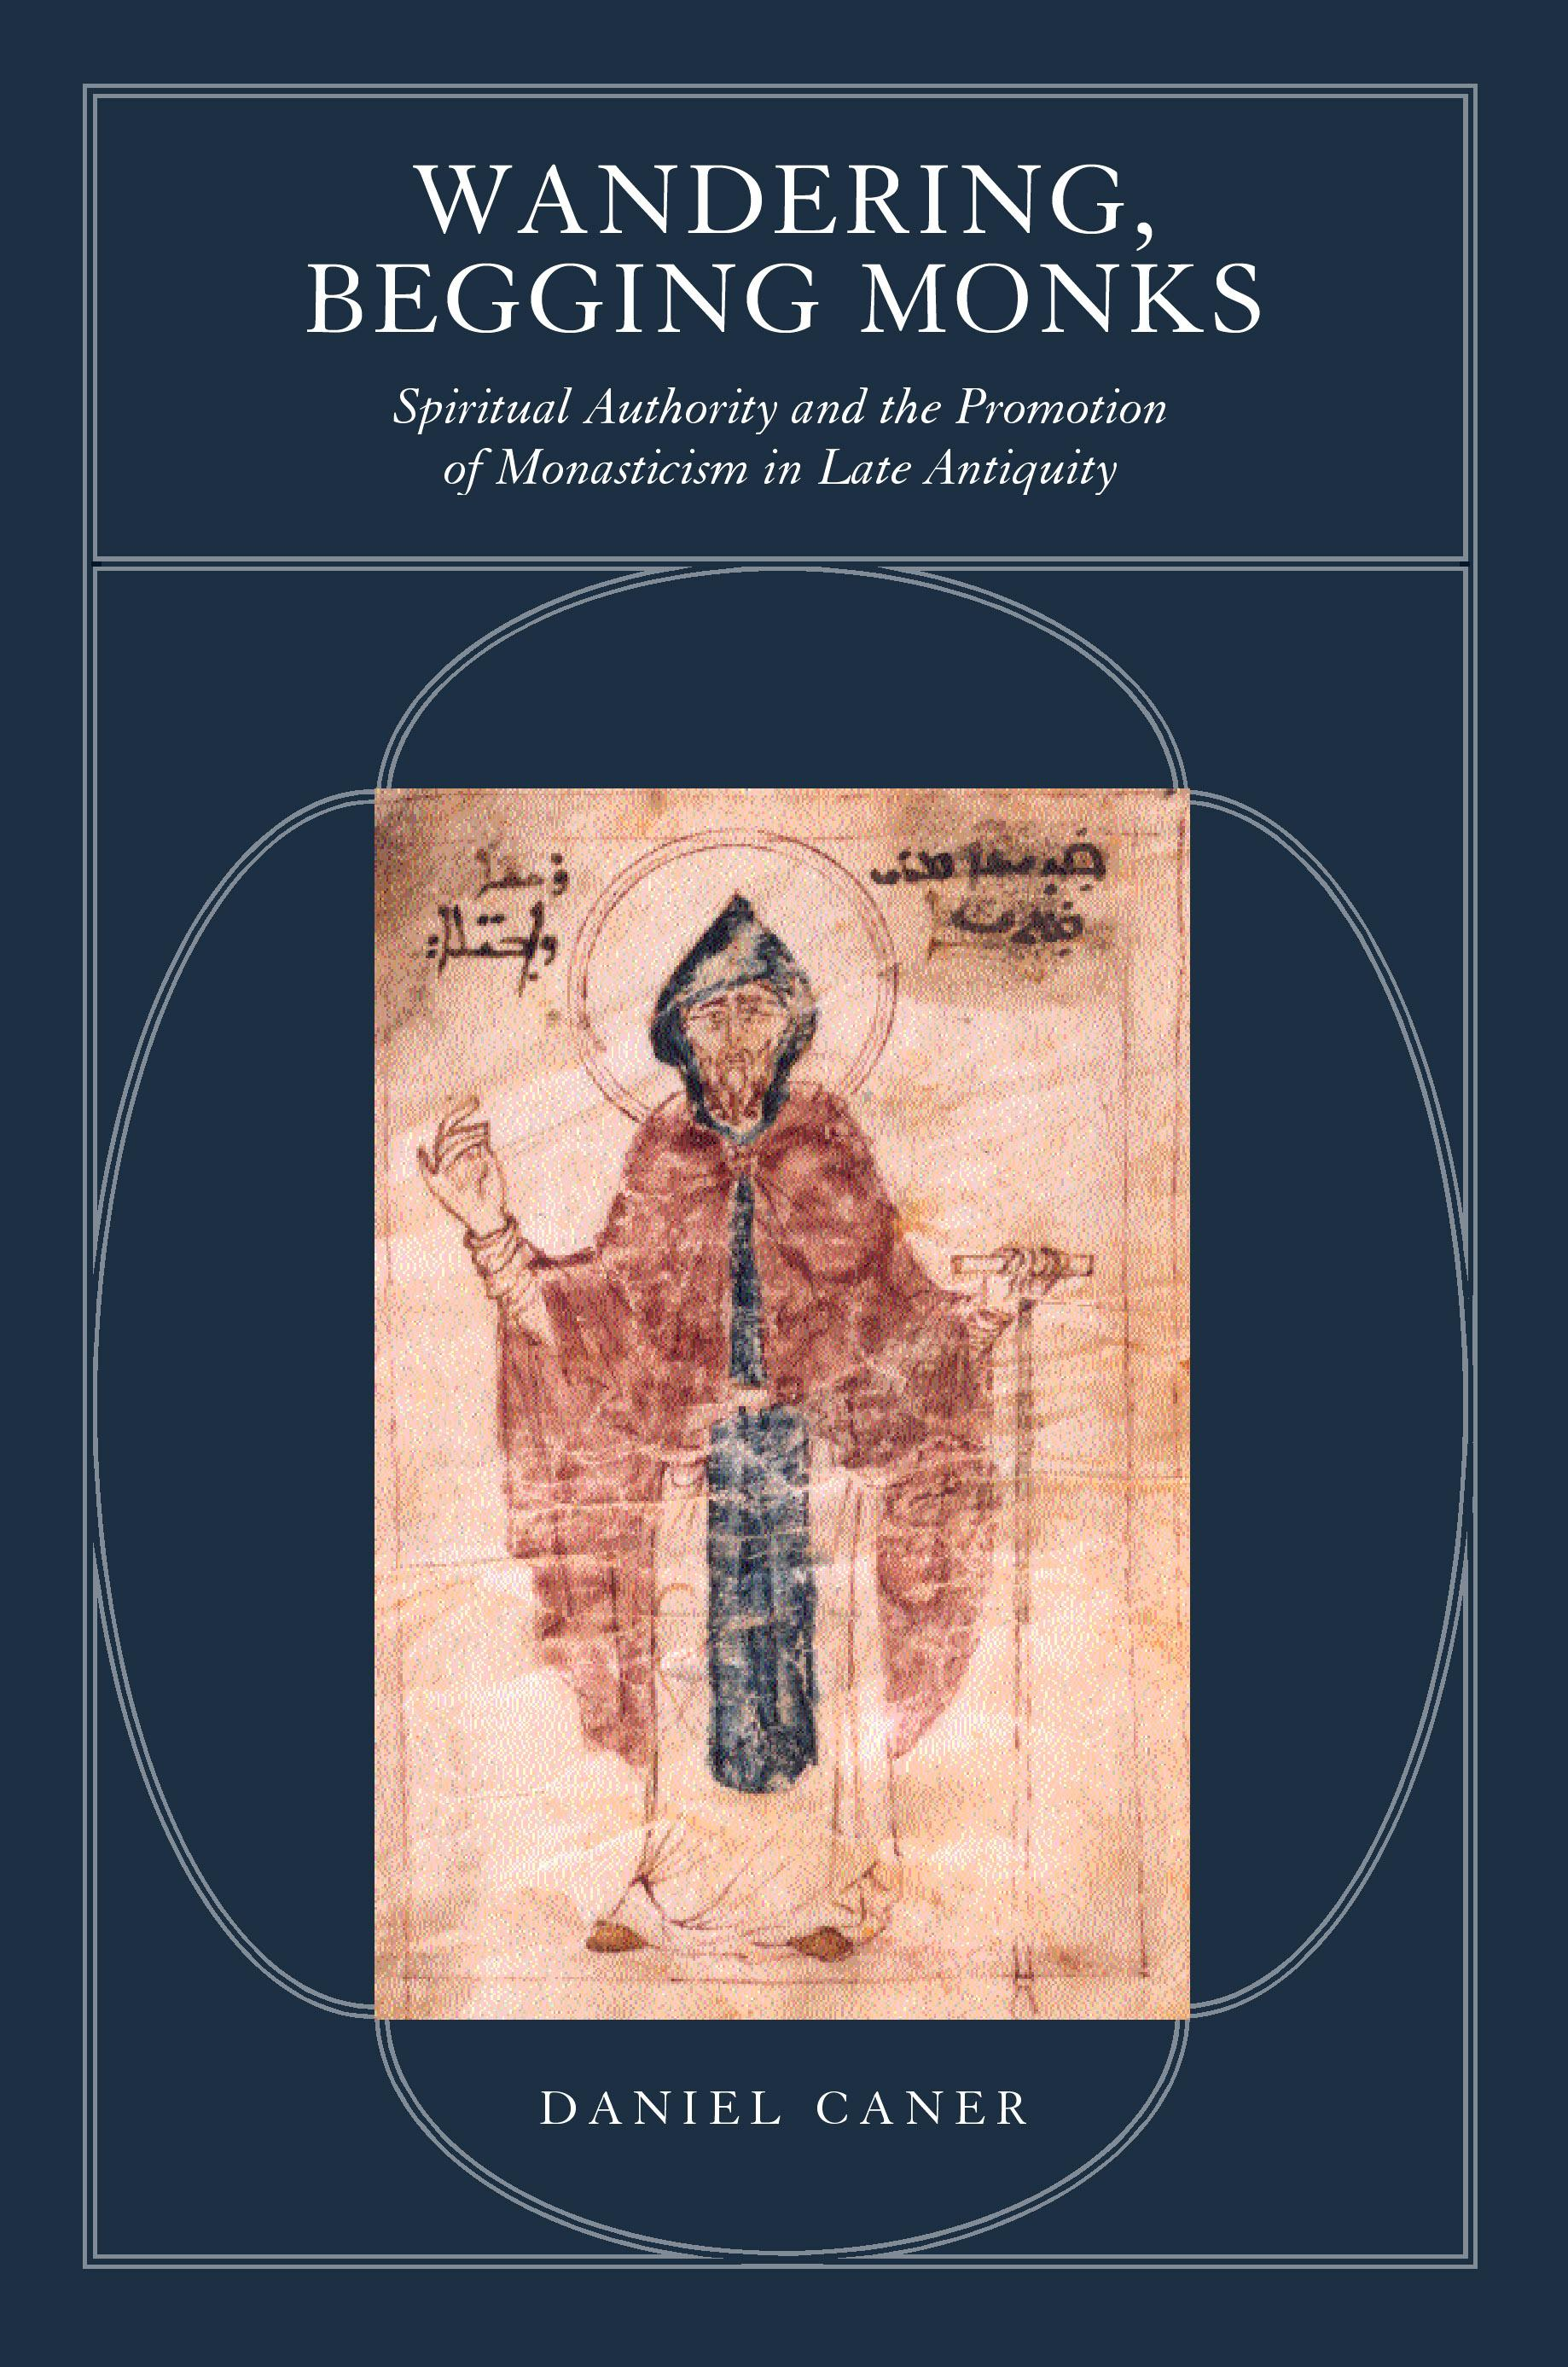 Wandering, Begging Monks: Spiritual Authority and the Promotion of Monasticism in Late Antiquity EB9780520928503